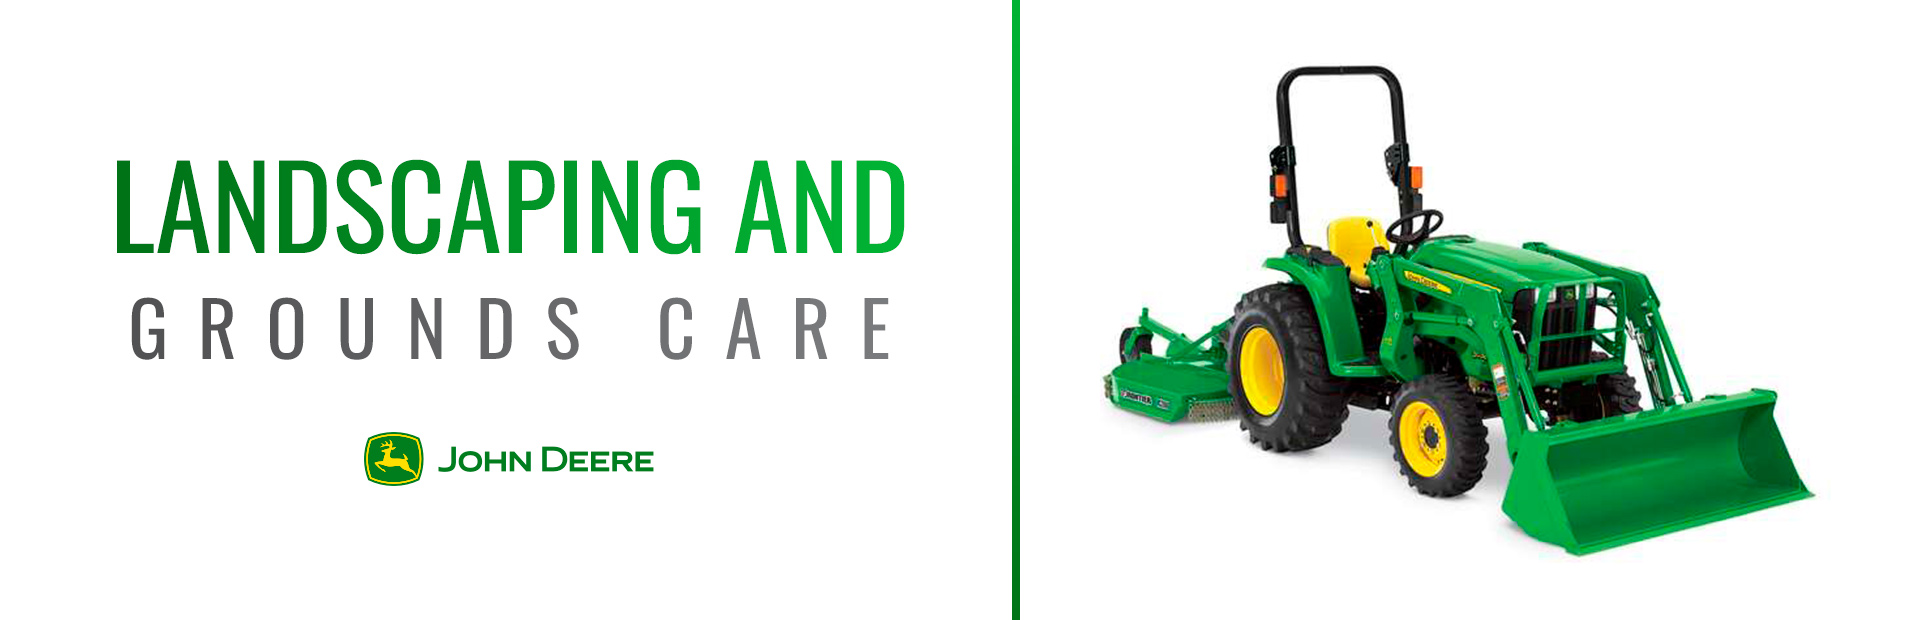 John Deere: Landscaping and Grounds Care